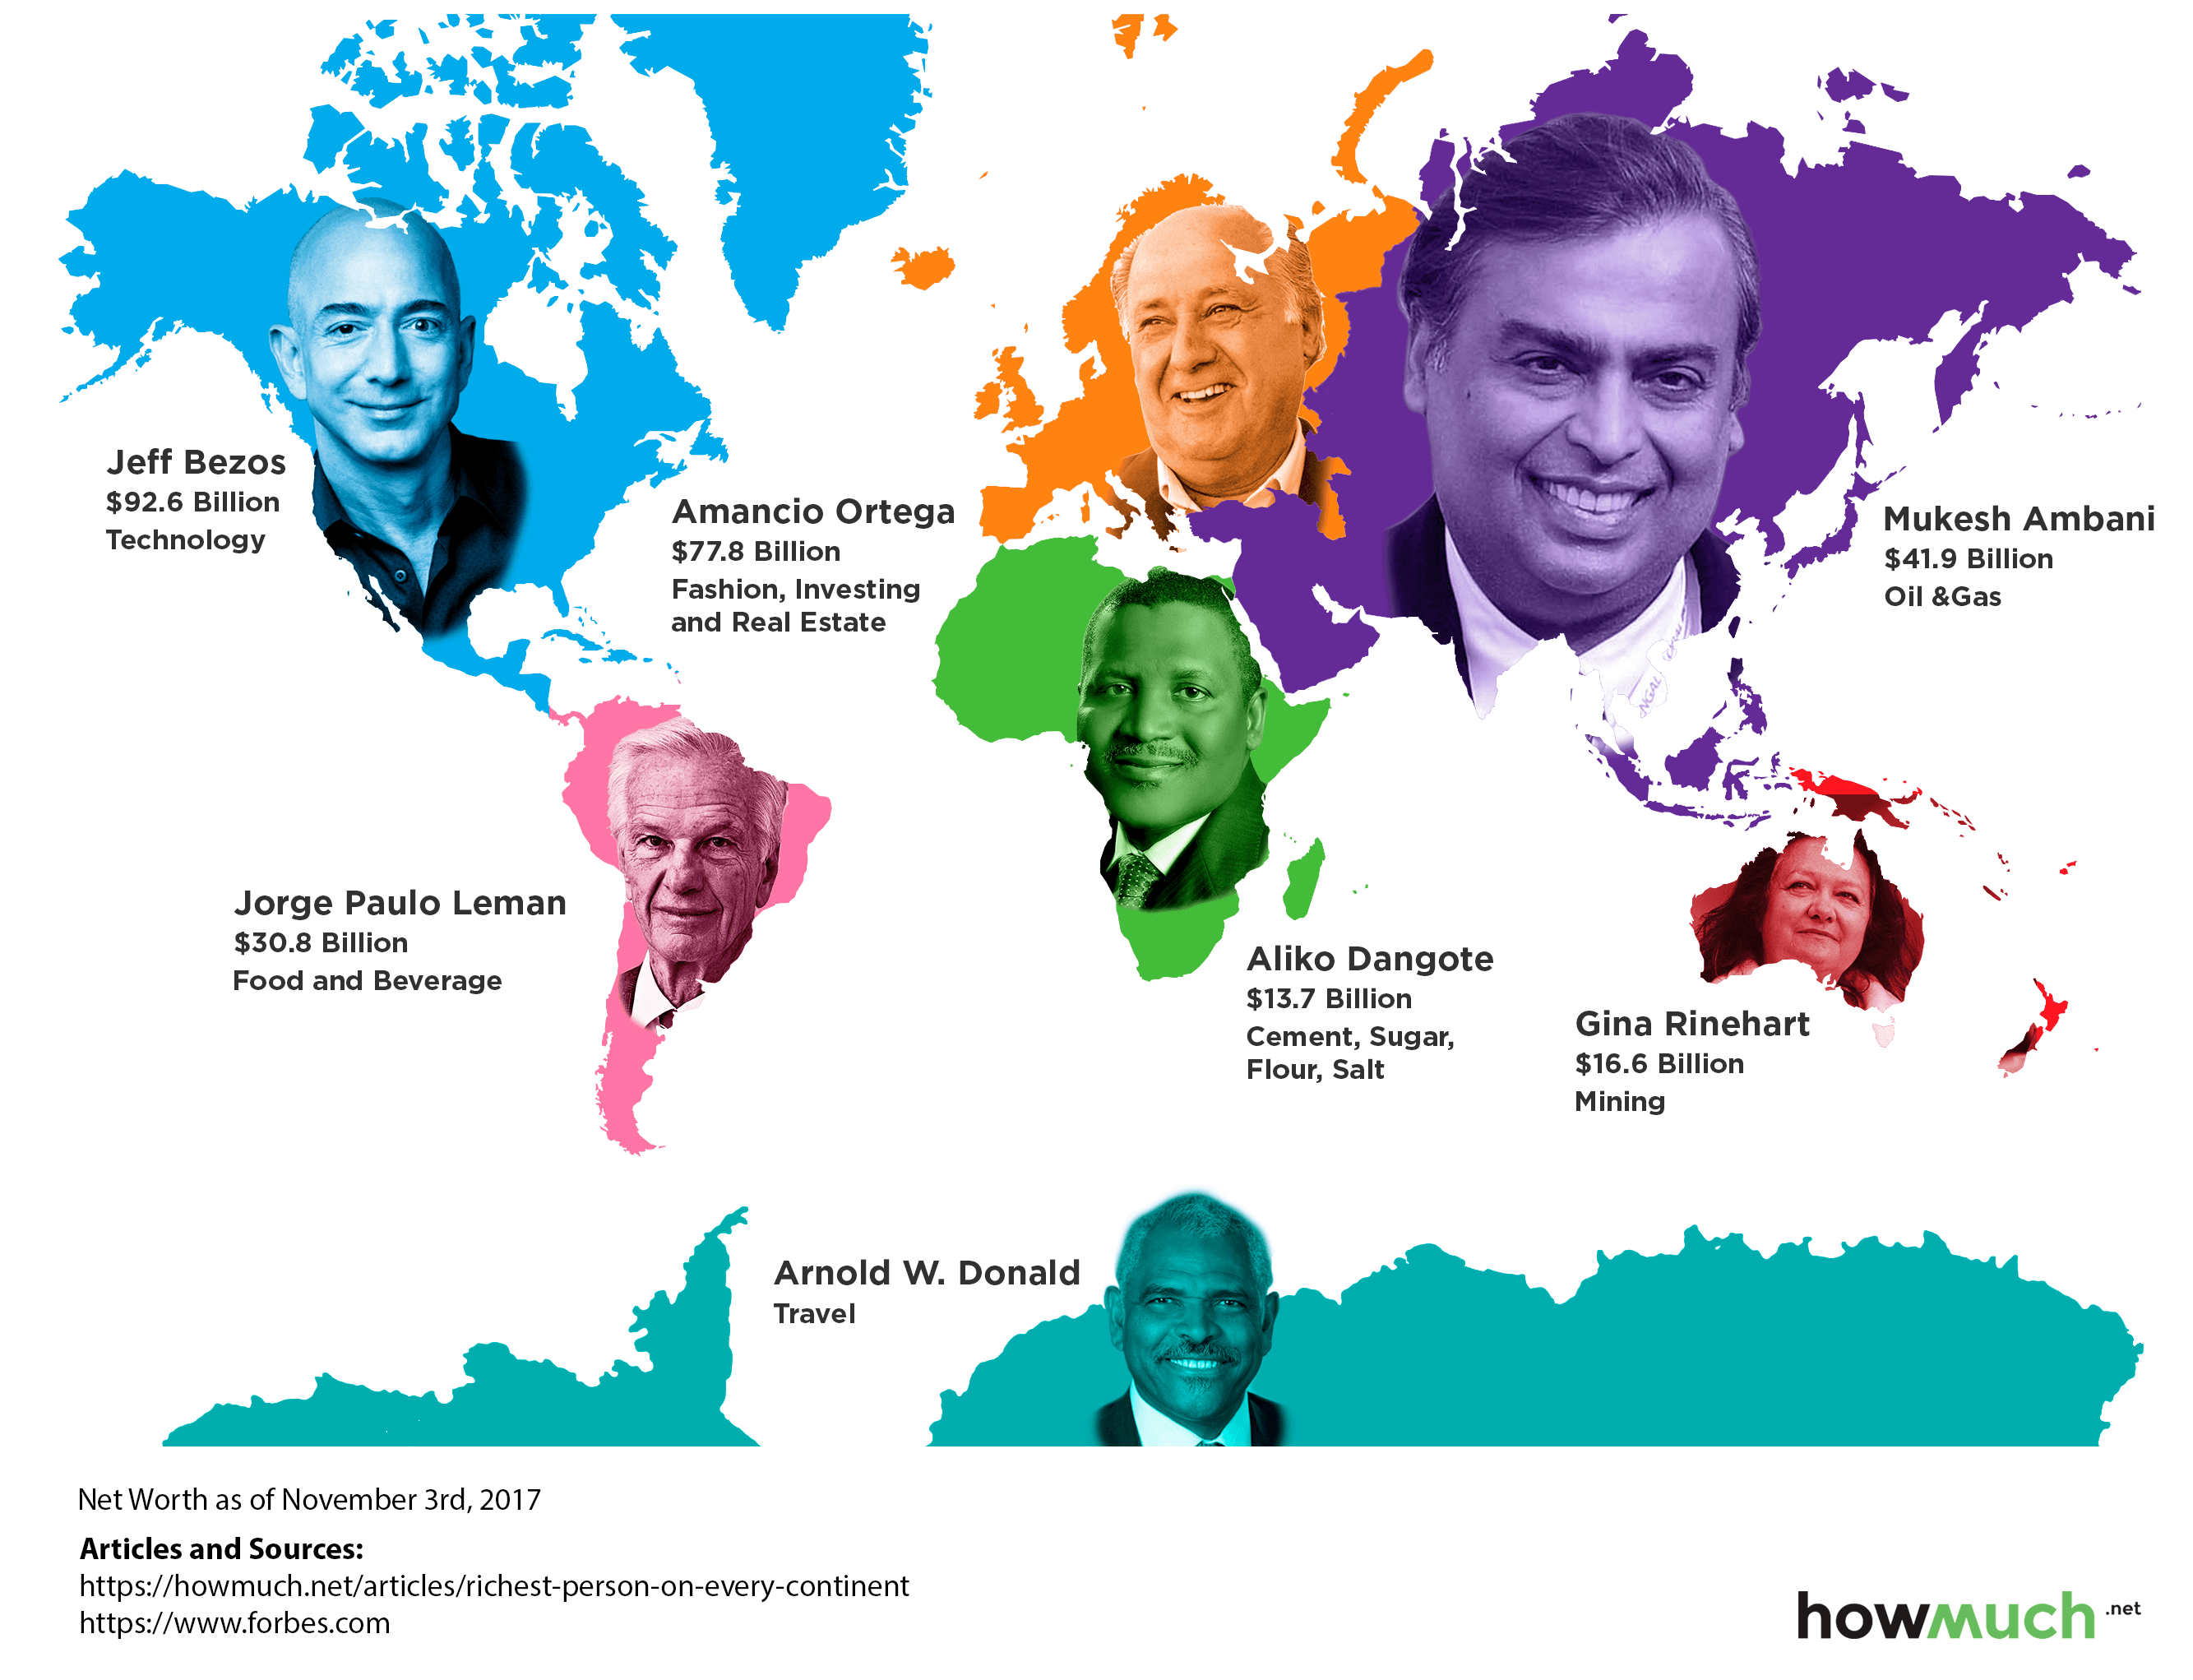 The Richest Person on Each Continent